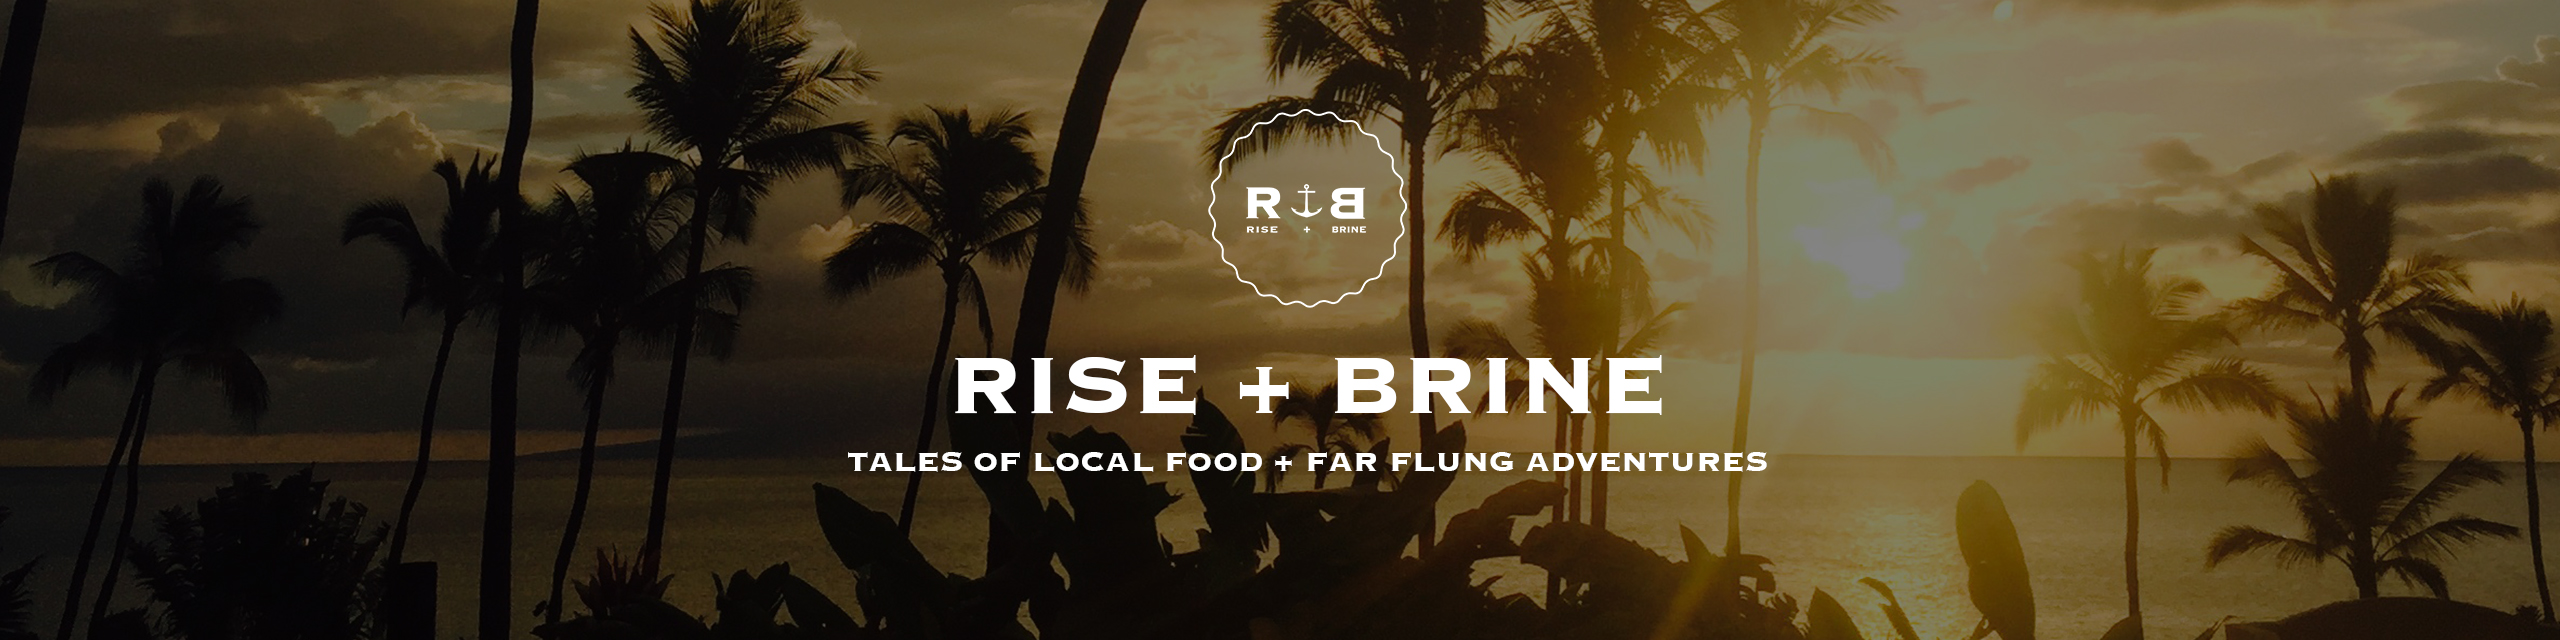 rise and brine home banner